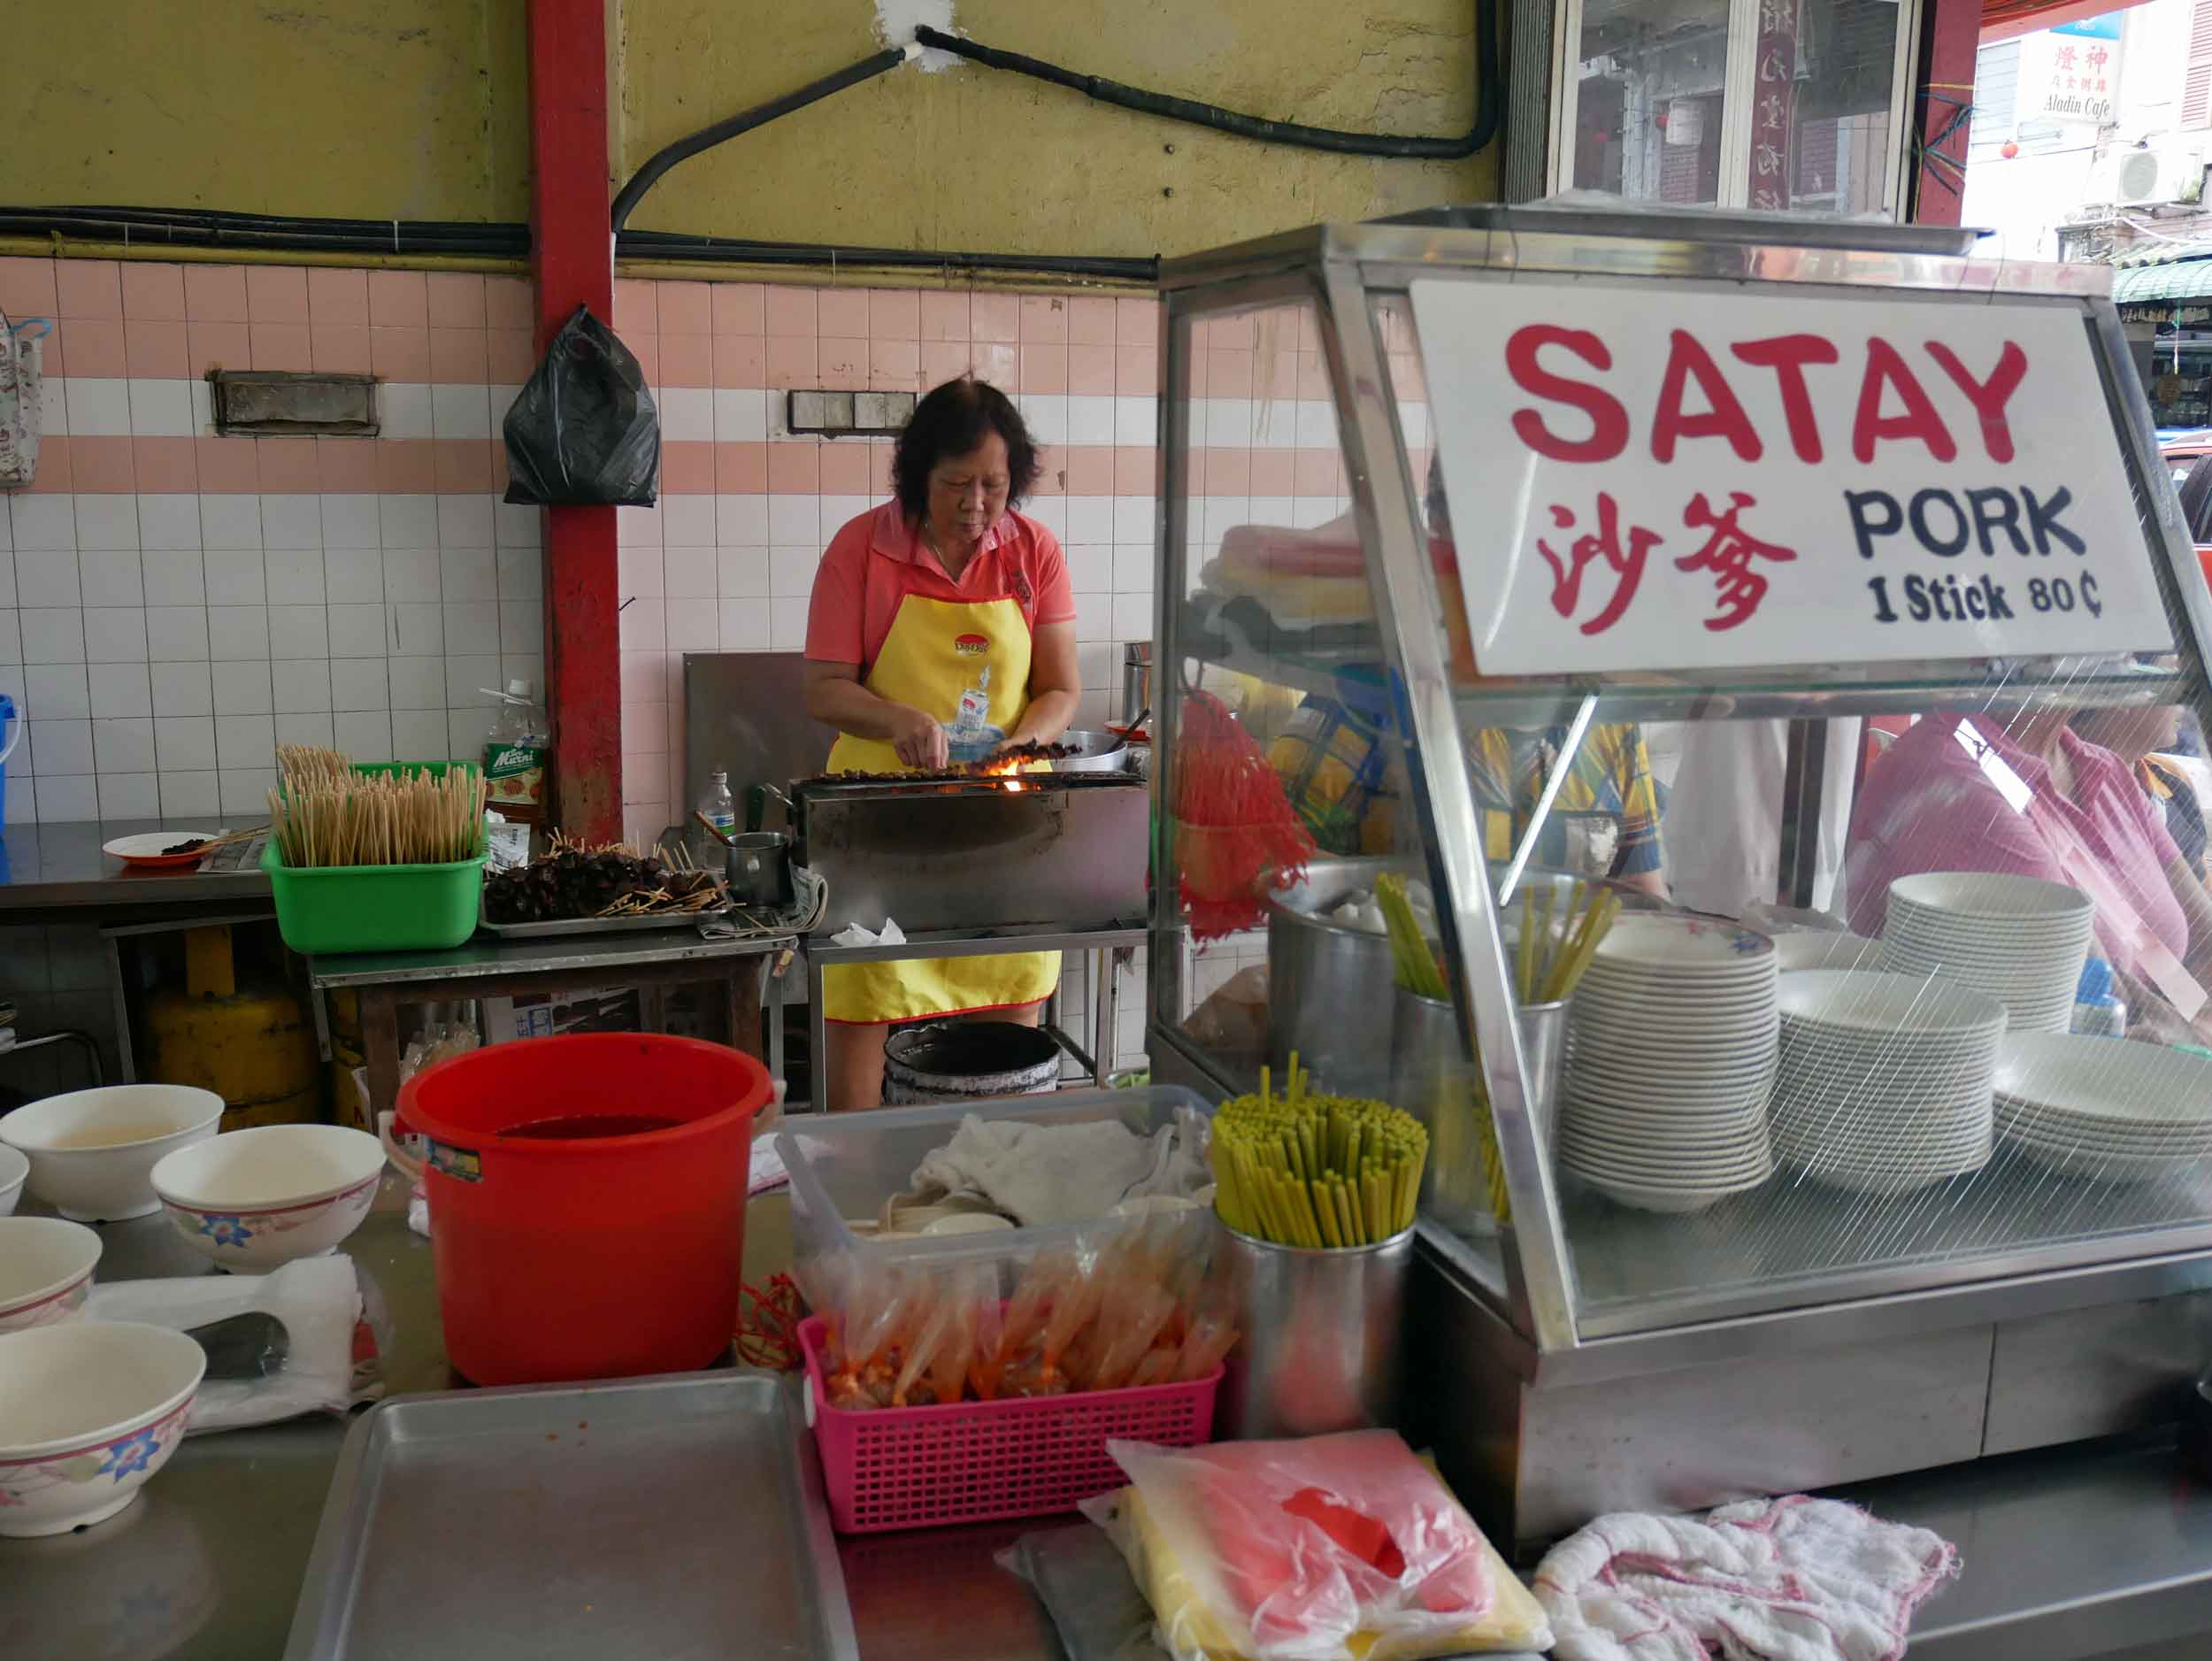 We found more great Malaysian street food in Kuching, including the Yan Chun Tai food court (May 2).